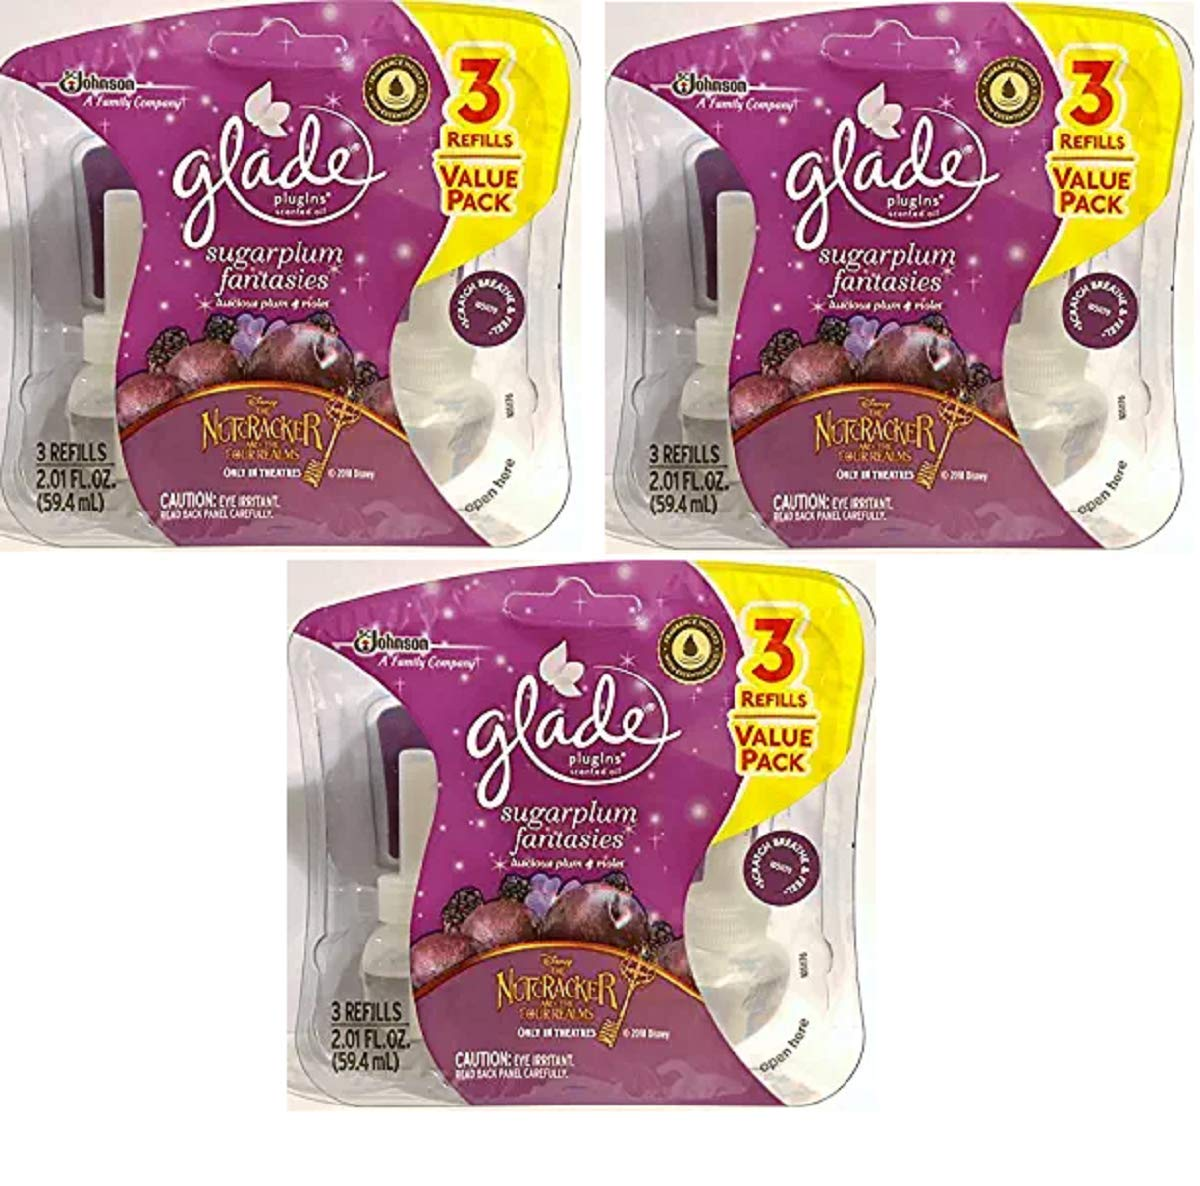 Glade Plugins Scented Oil Refills - Holiday Collection 2018 - Sugarplum Fantasies - 3 Count Oil Refills Per Package - 3 Packages - 9 Refills Total